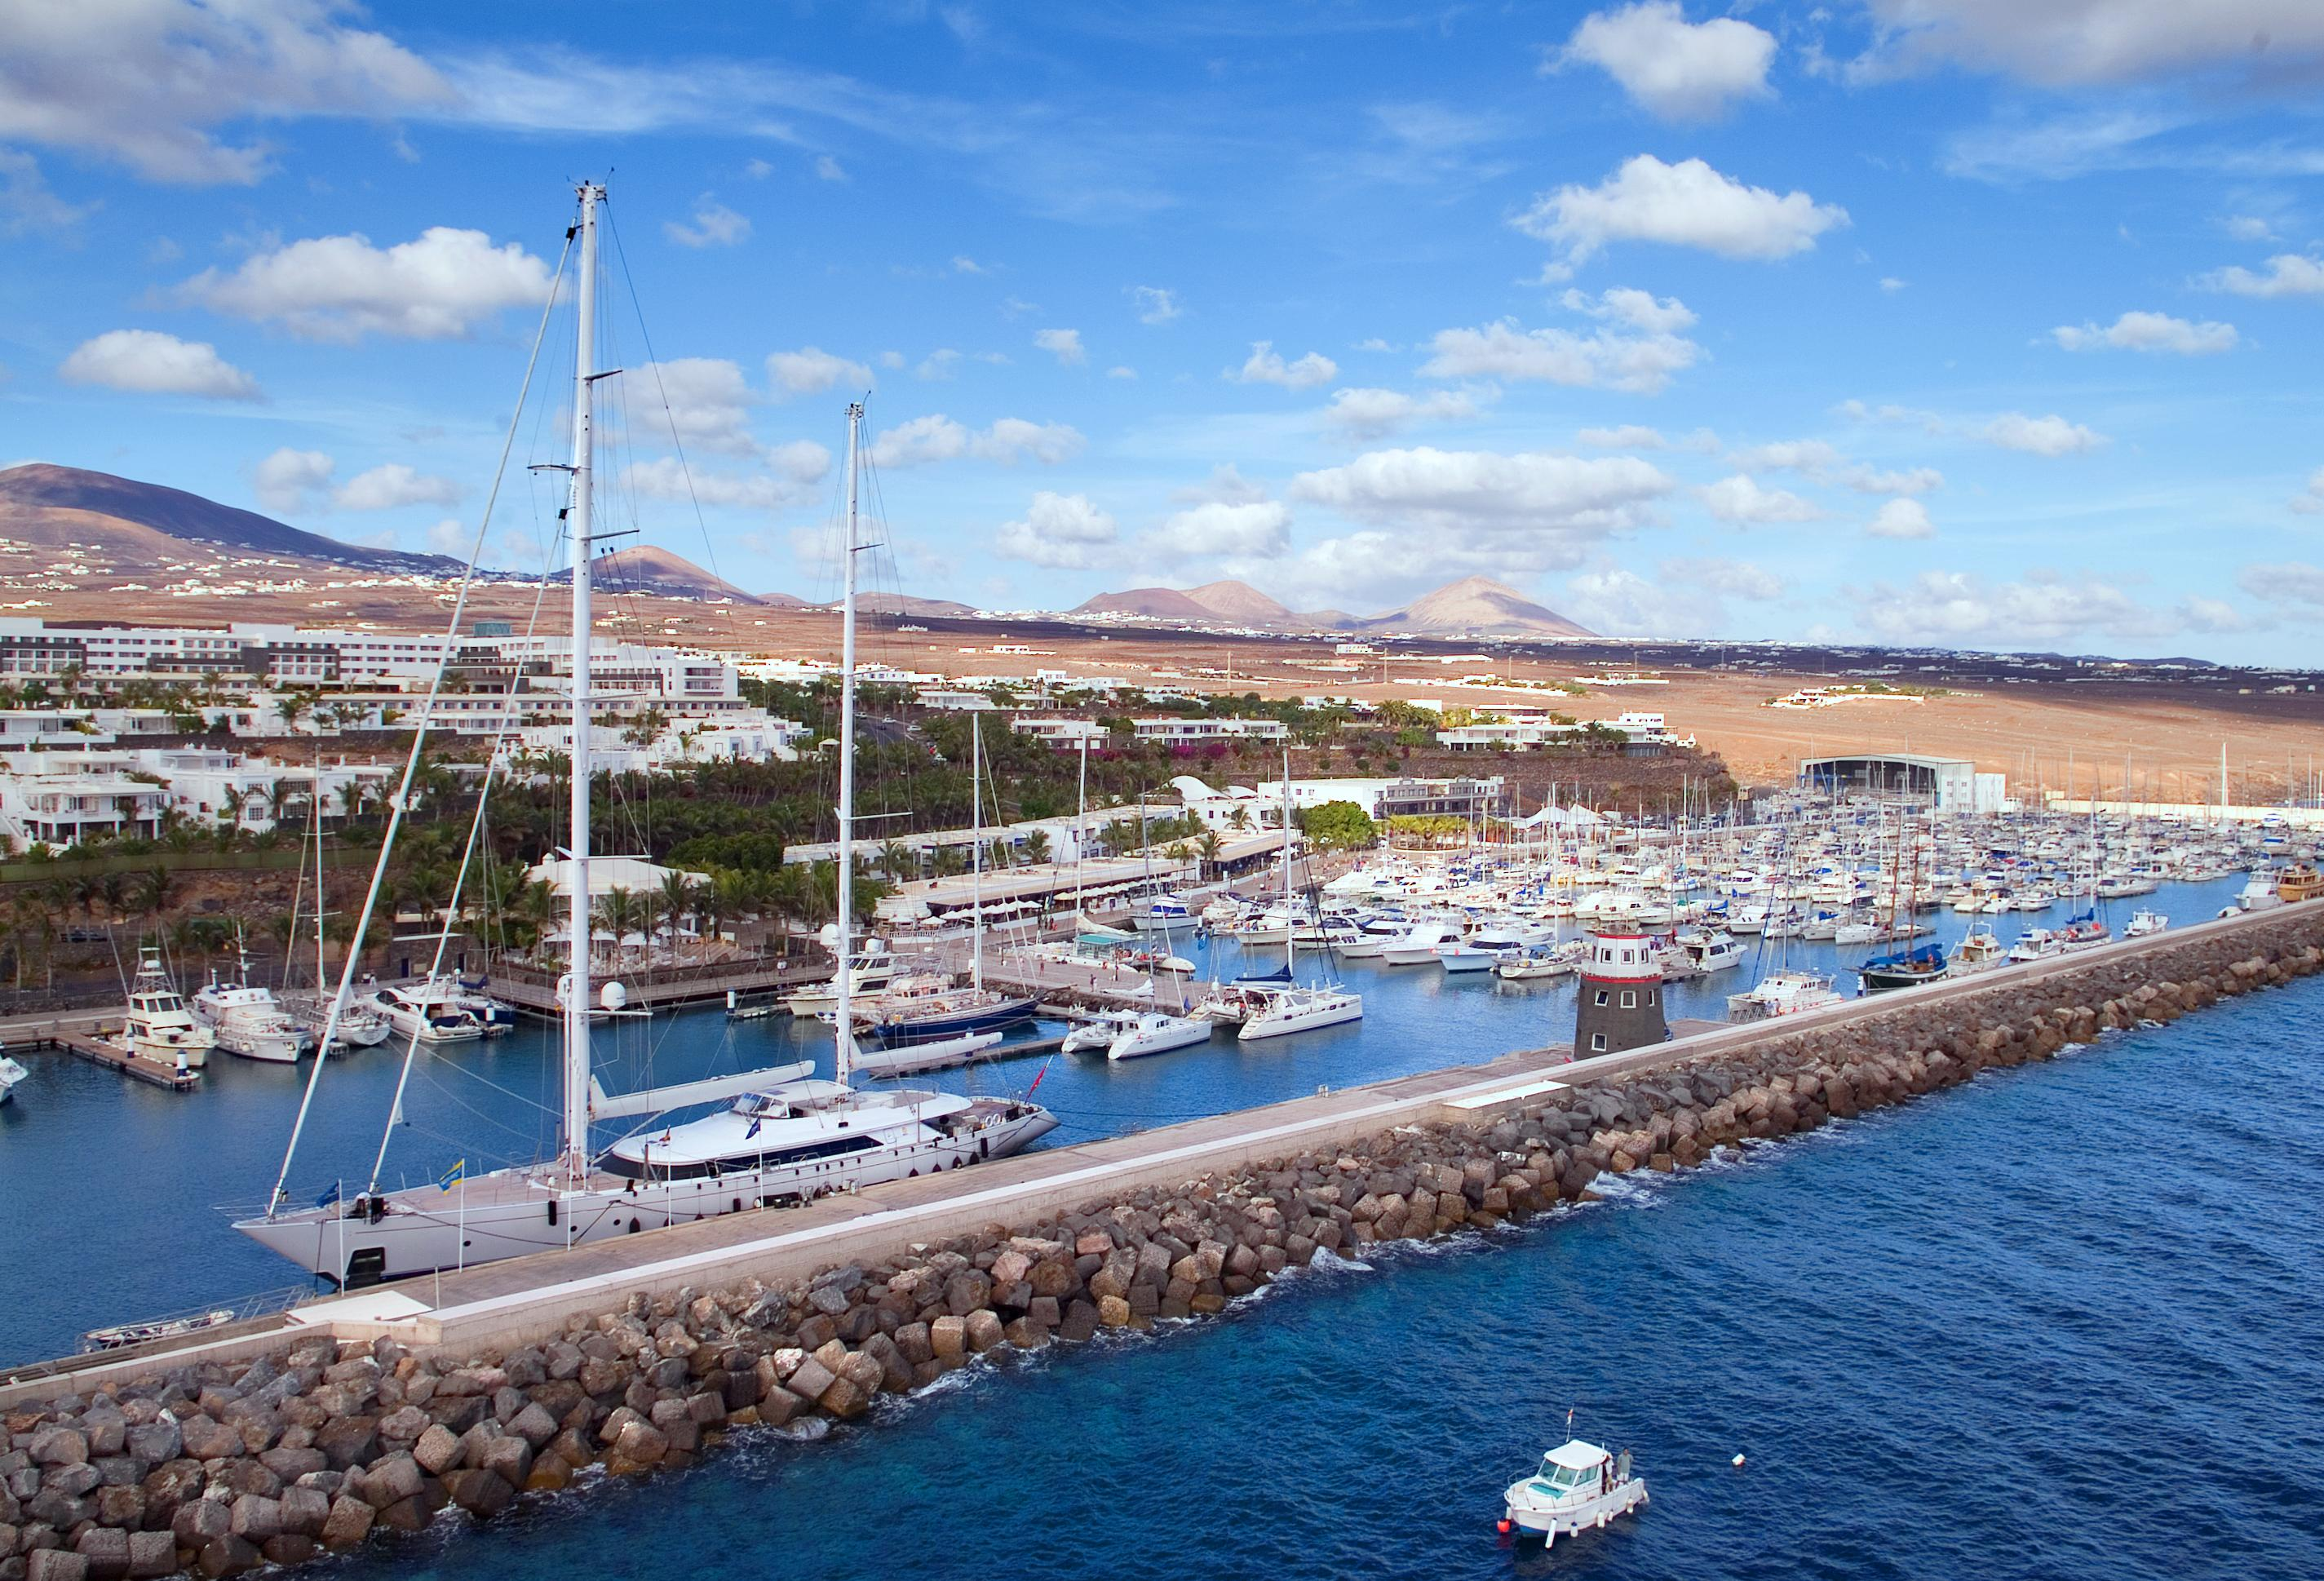 A view of the city and the mountains of Lanzarote from the marina at Puerto Calero.